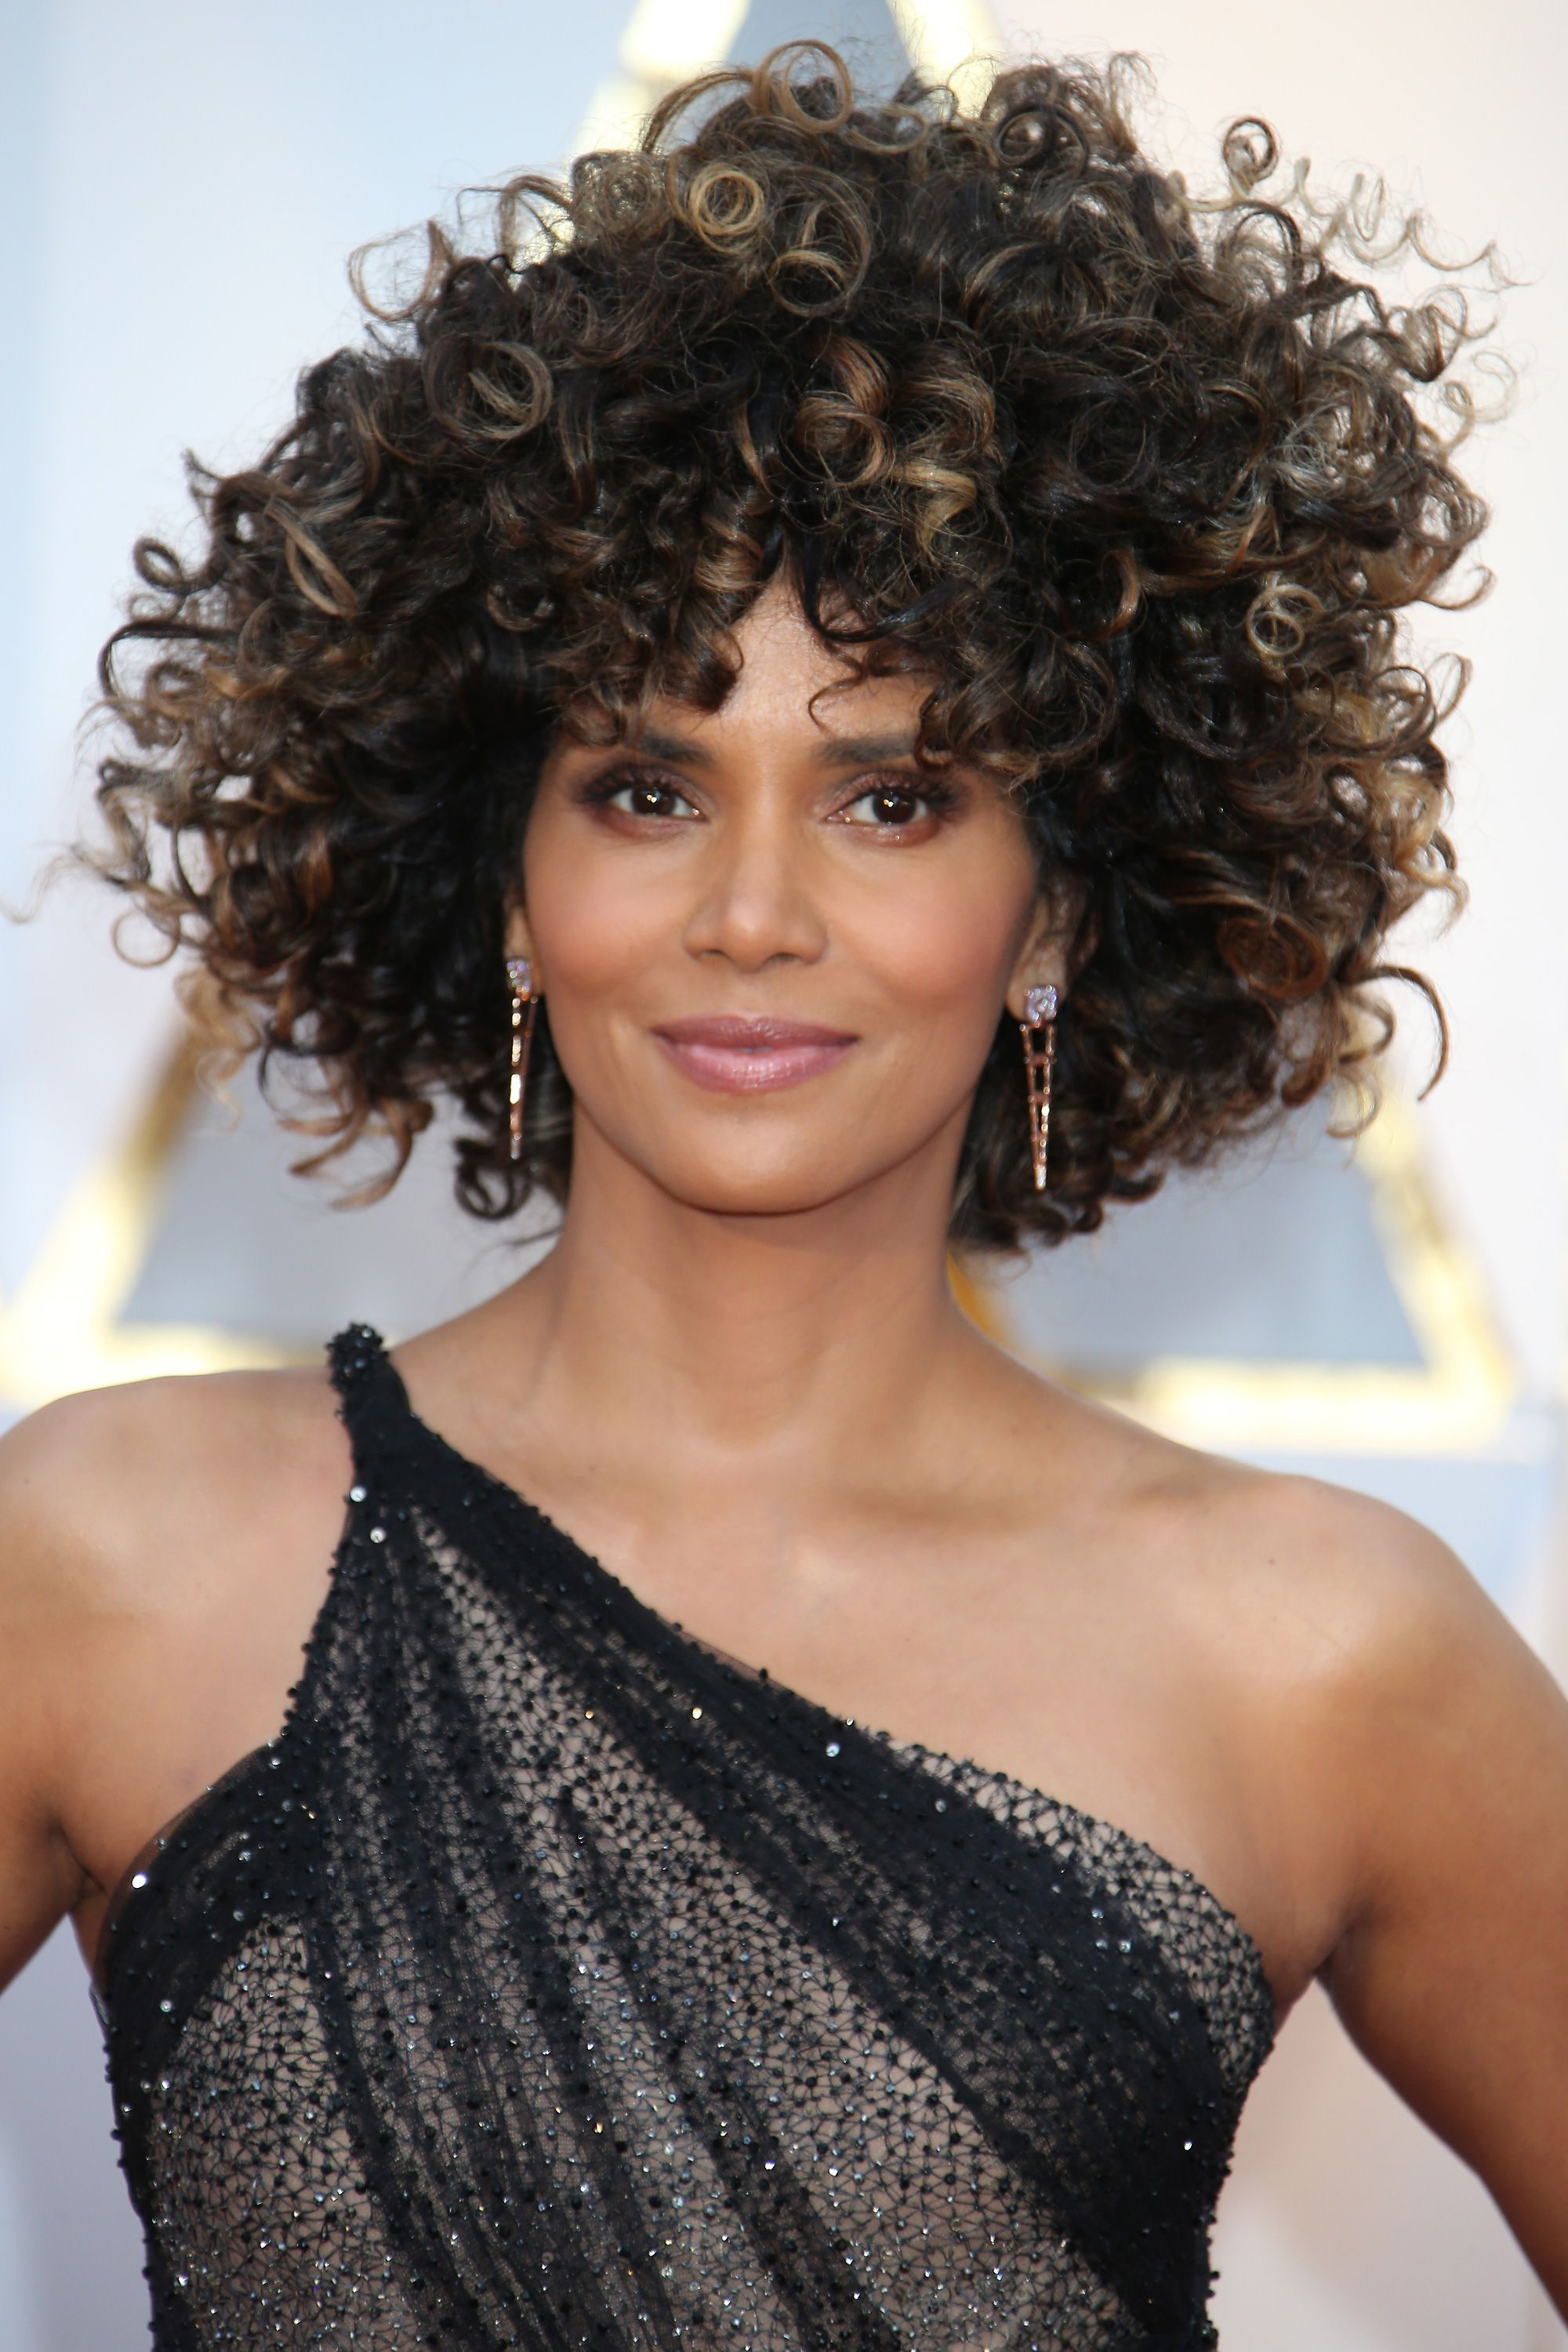 42 Easy Curly Hairstyles – Short, Medium, And Long Haircuts For With Regard To Famous Medium Haircuts For Kinky Hair (Gallery 16 of 20)